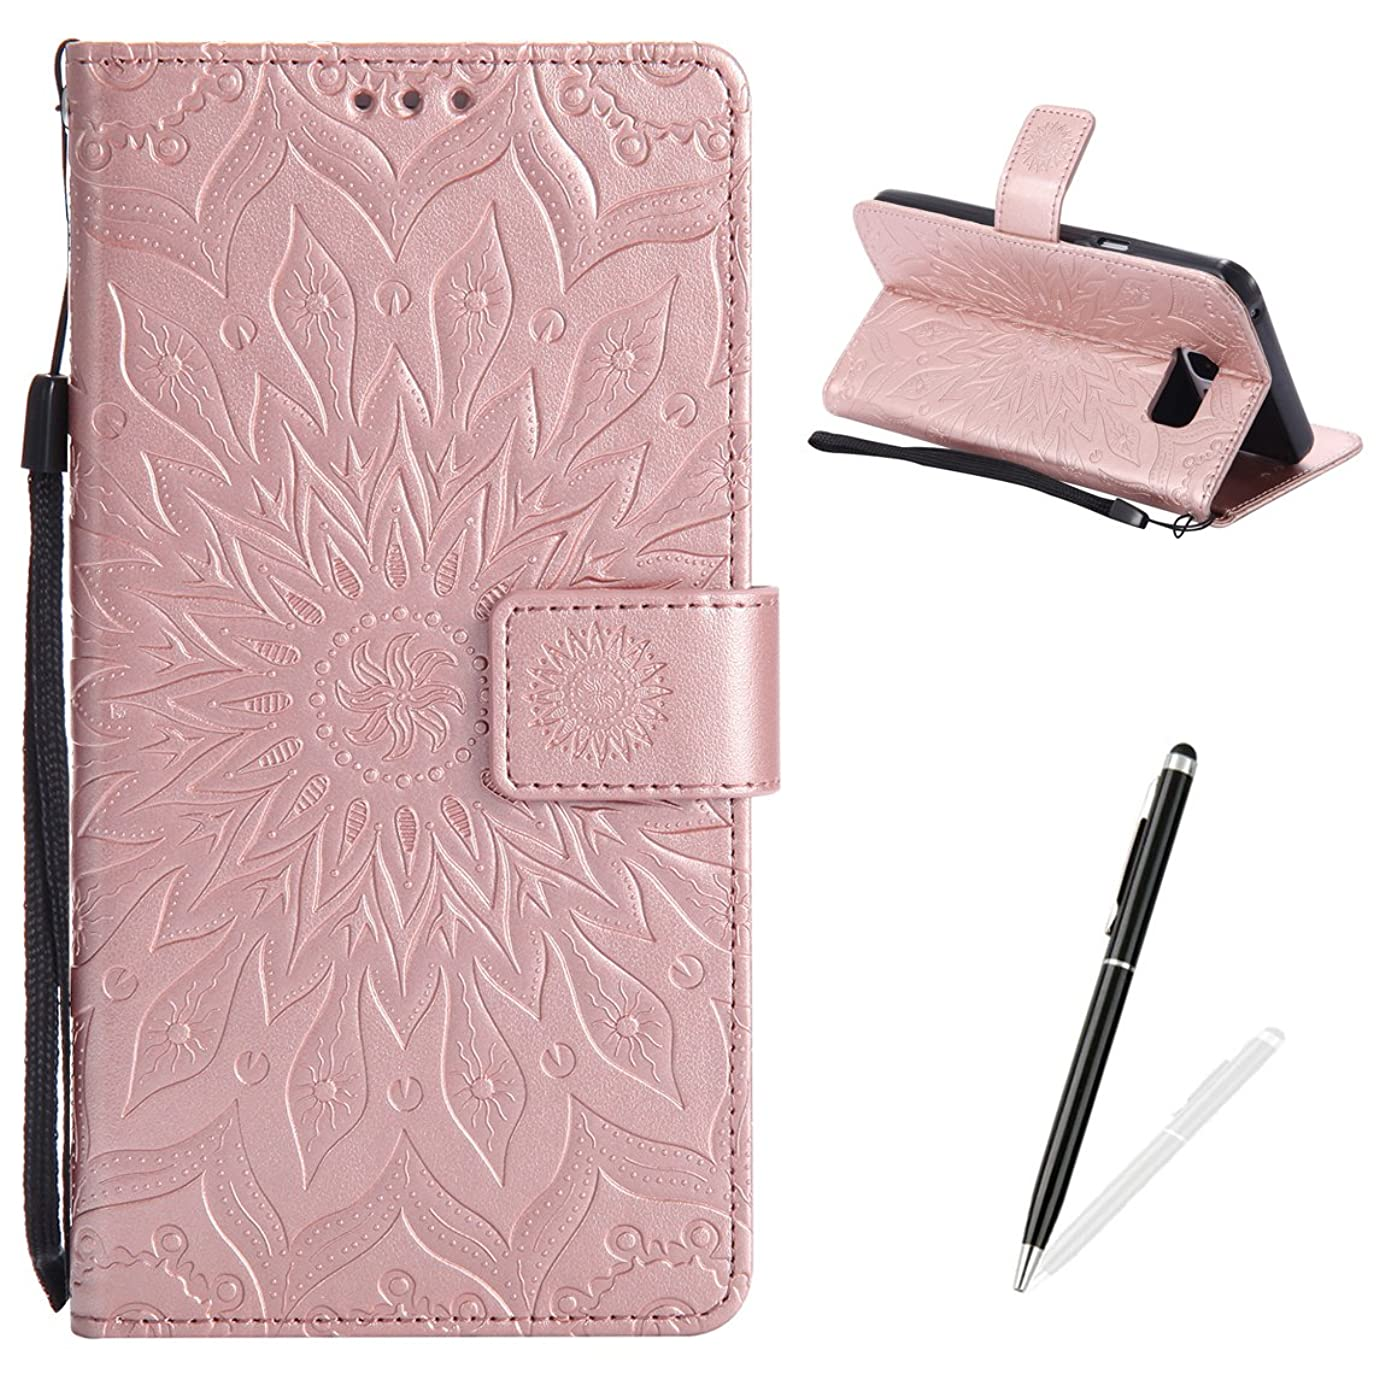 MAGQI Samsung Galaxy Note 5 Case Anti-Scratch Slim Fit Cover, Embossed Mandala Sunflower Serise Luxury Soft PU Leather Stand Vintage Retro Wristlet Flip Wallet Card Slots Skin Shell